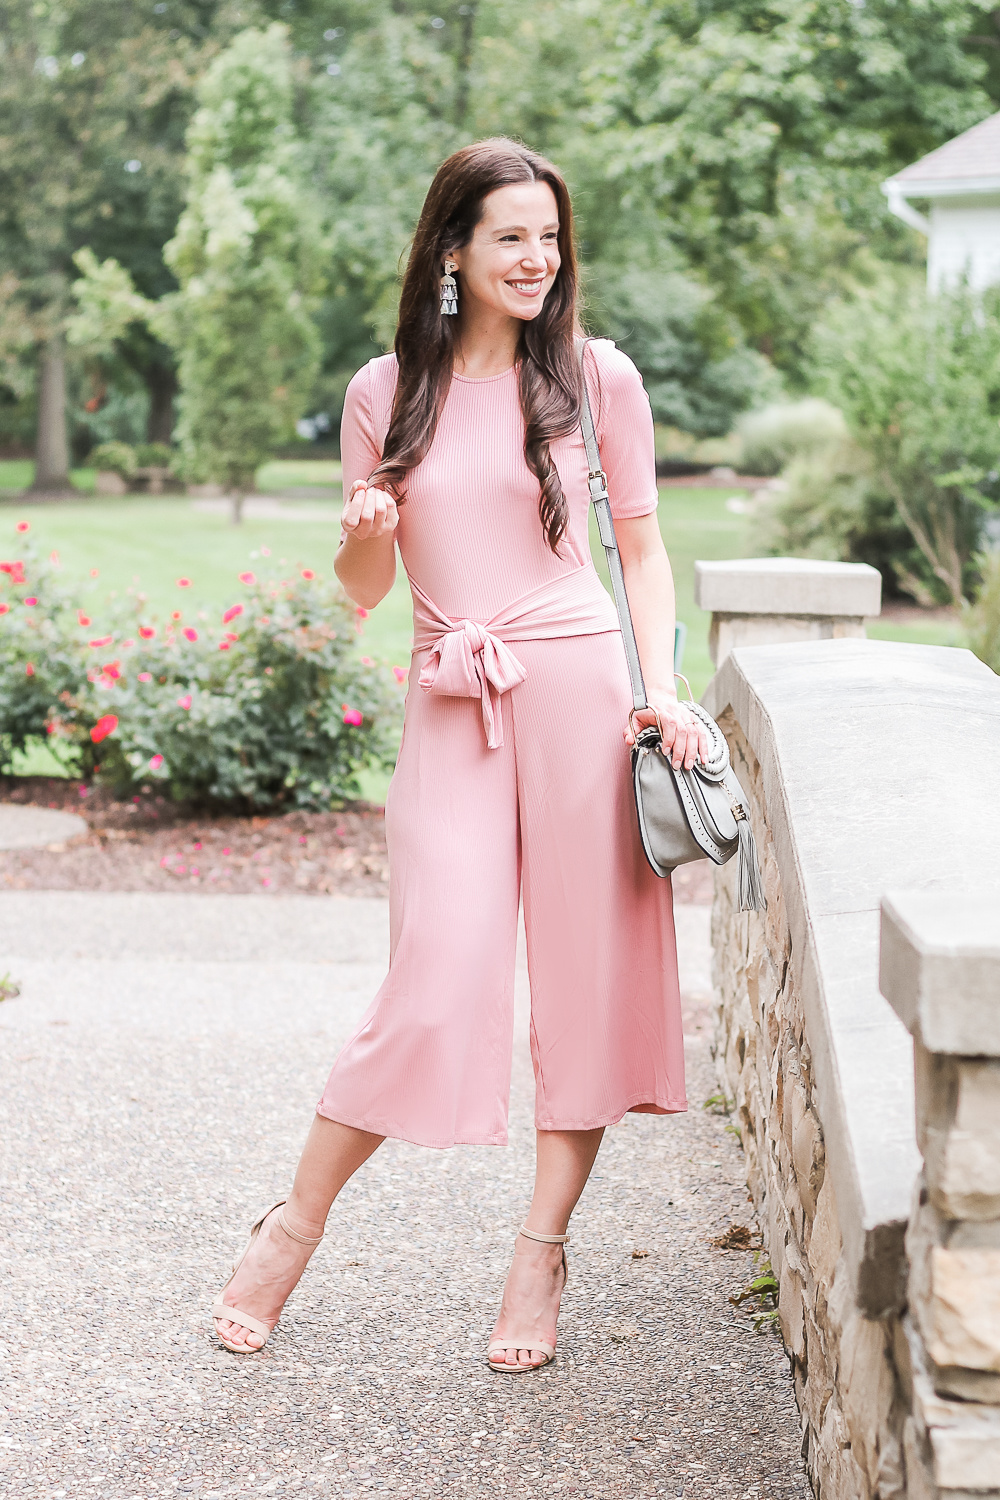 Amazon Fashion rose pink jumpsuit, find. women's ribbed jersey jumpsuit, Amazon Fashion nude block heel sandals, Chloe Hudson dupe bag, Chloe Hudson look-alike bag, Tom Clovers dupe bag, Kendra Scott Rechelle earrings, popular affordable fashion blogger Stephanie Ziajka, popular affordable fashion blog Diary of a Debutante